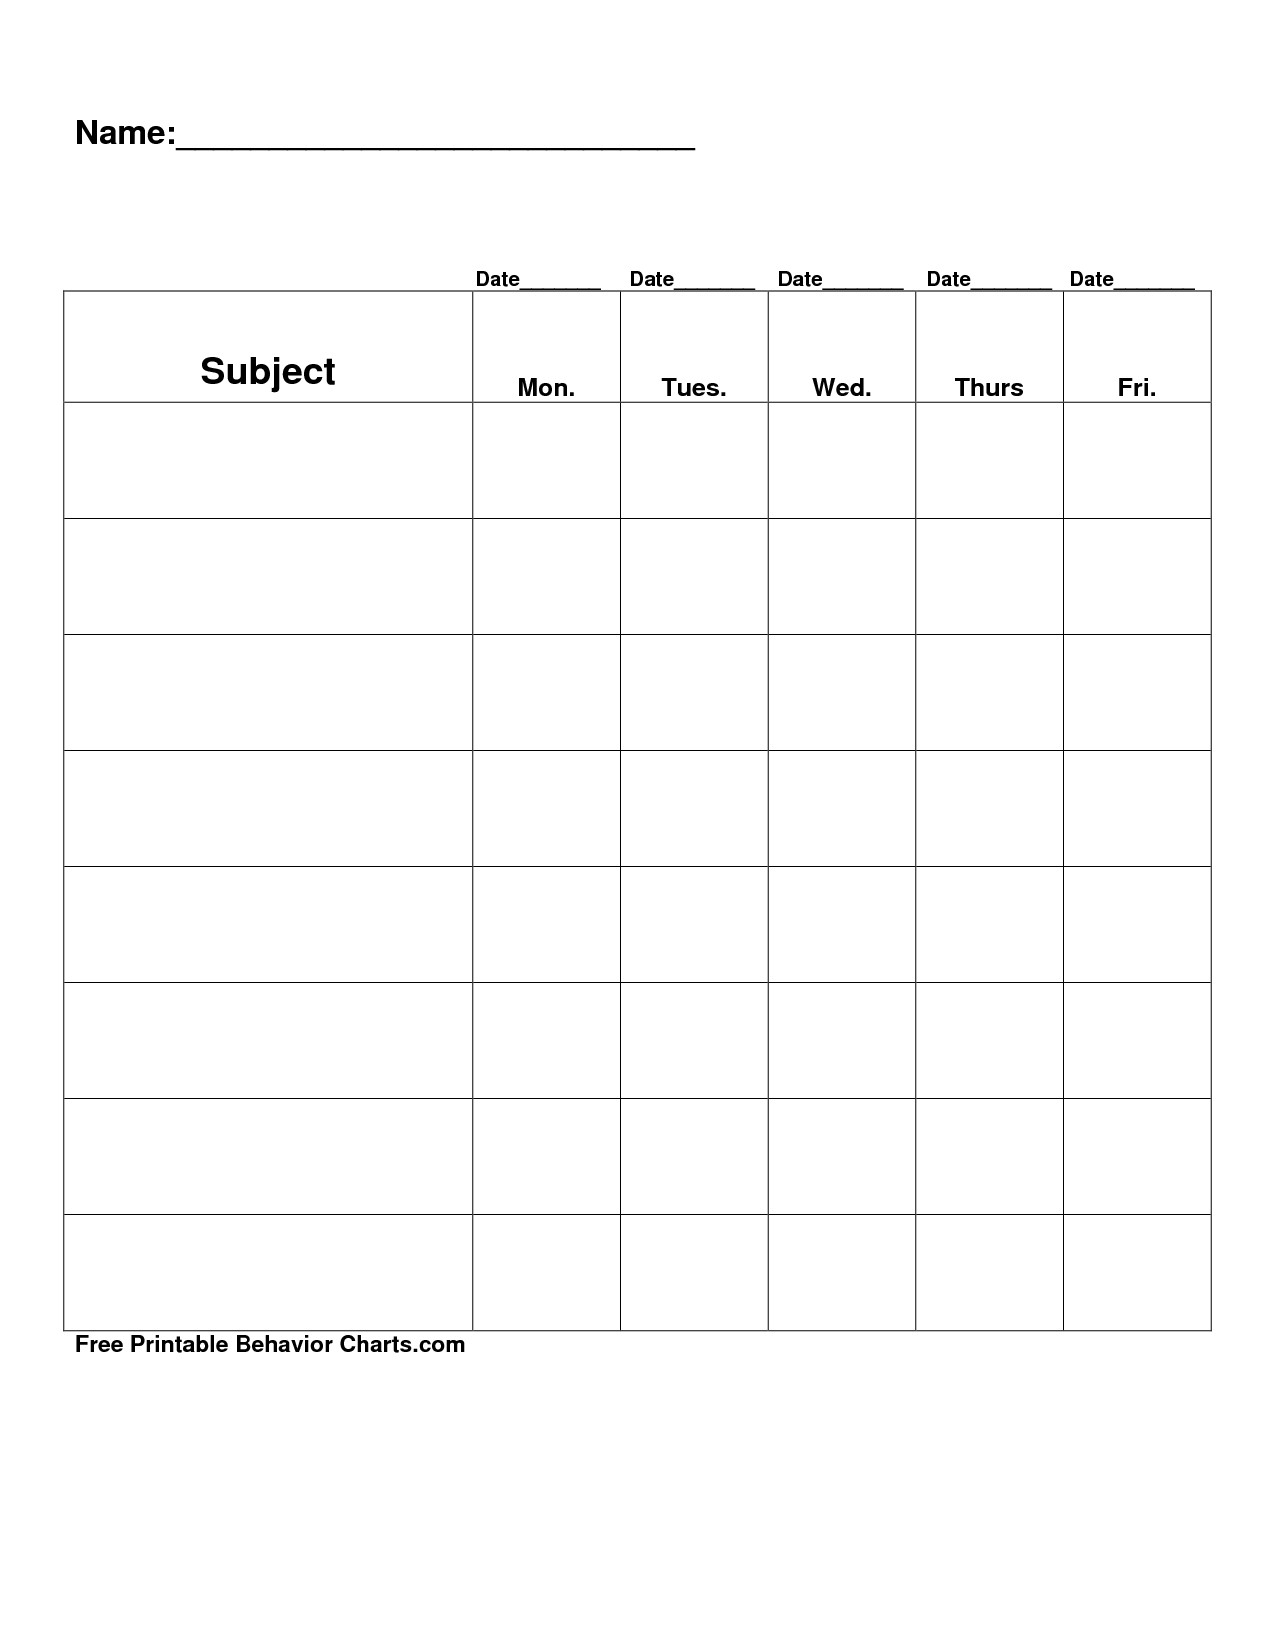 Blank 31 Day Calendar Template Free Able To Edit Printable For No with regard to Printable Blank 31 Day Calendar